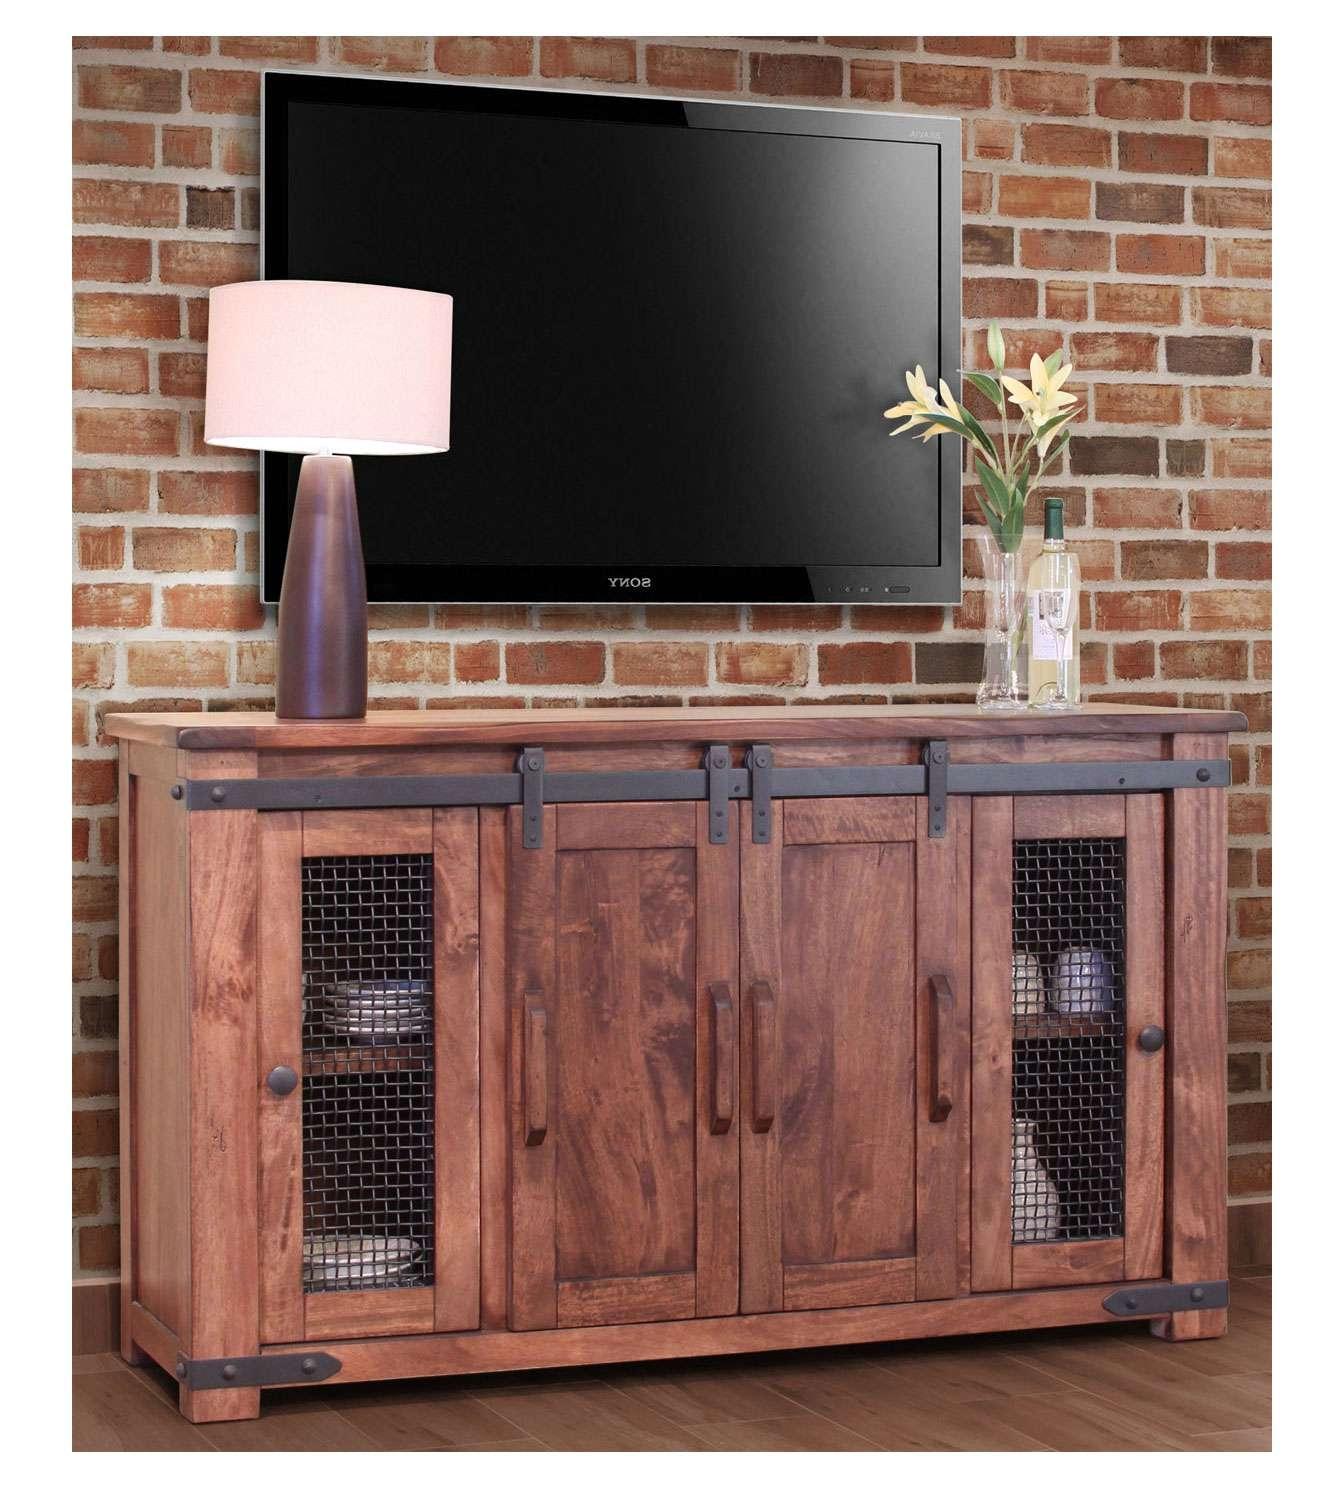 Tv : Rustic Red Tv Stands Delight Rustic Red Tv Stands' Compelling In Red Tv Cabinets (View 16 of 20)